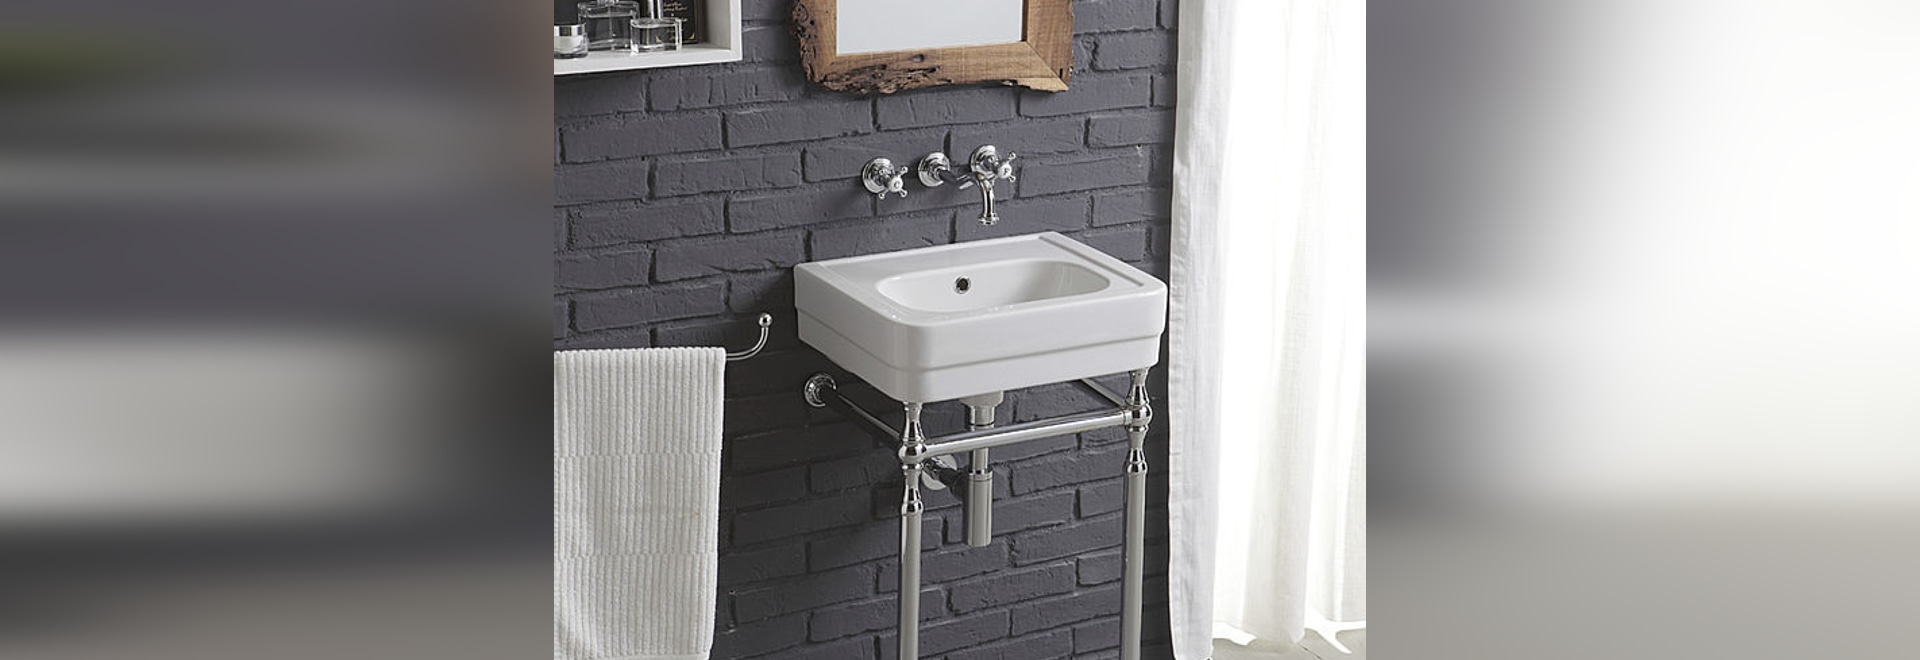 Small basins or how gathering optimization of space, charm and practicality in your bathroom!